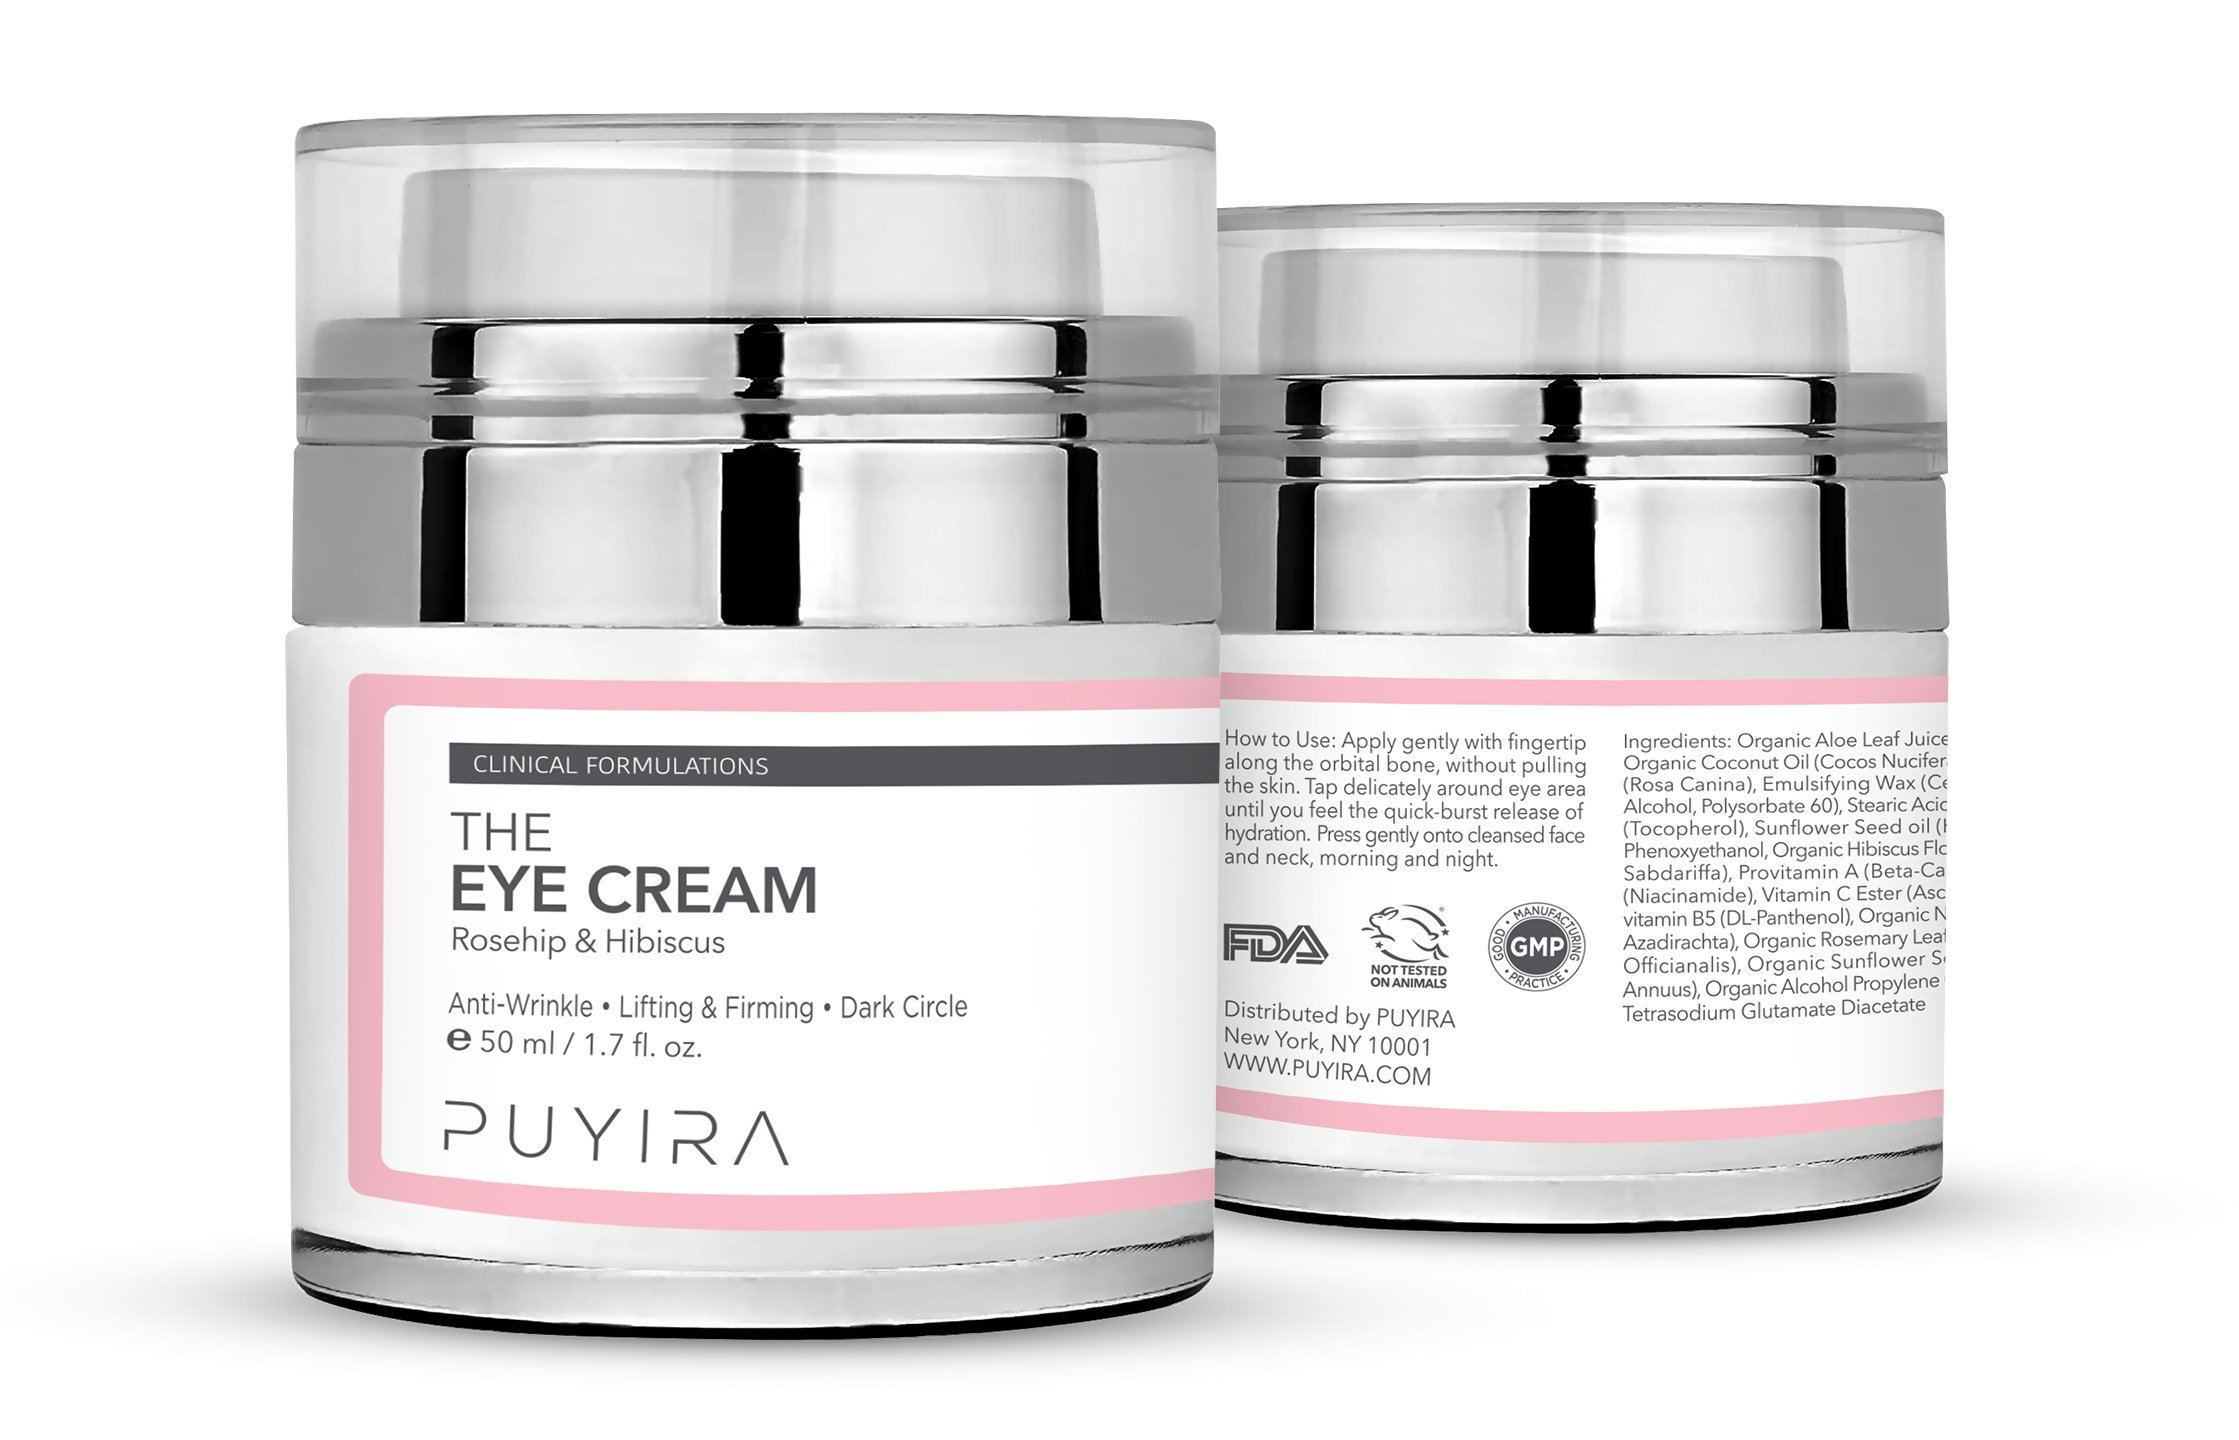 PUYIRA Rosehip Eye Cream Moisturizer , 1.7 fl.oz - Reducing Puffiness and Bags, Erasing Fine Lines and Wrinkles, Brightening Dark Circles by PUYIRA (Image #2)